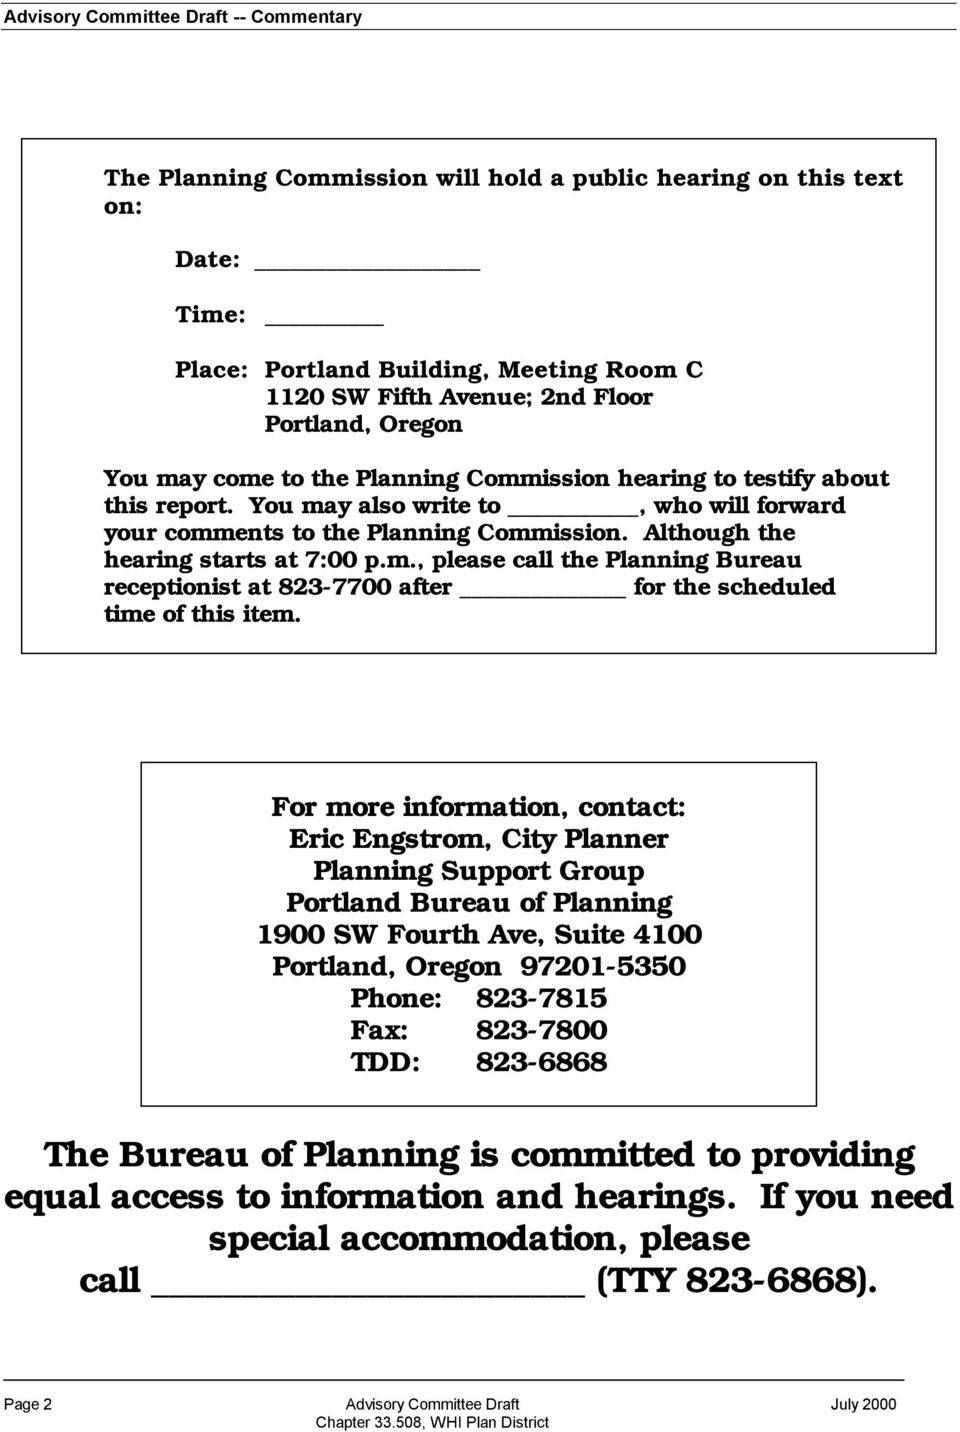 Although the hearing starts at 7:00 p.m., please call the Planning Bureau receptionist at 823-7700 after for the scheduled time of this item.